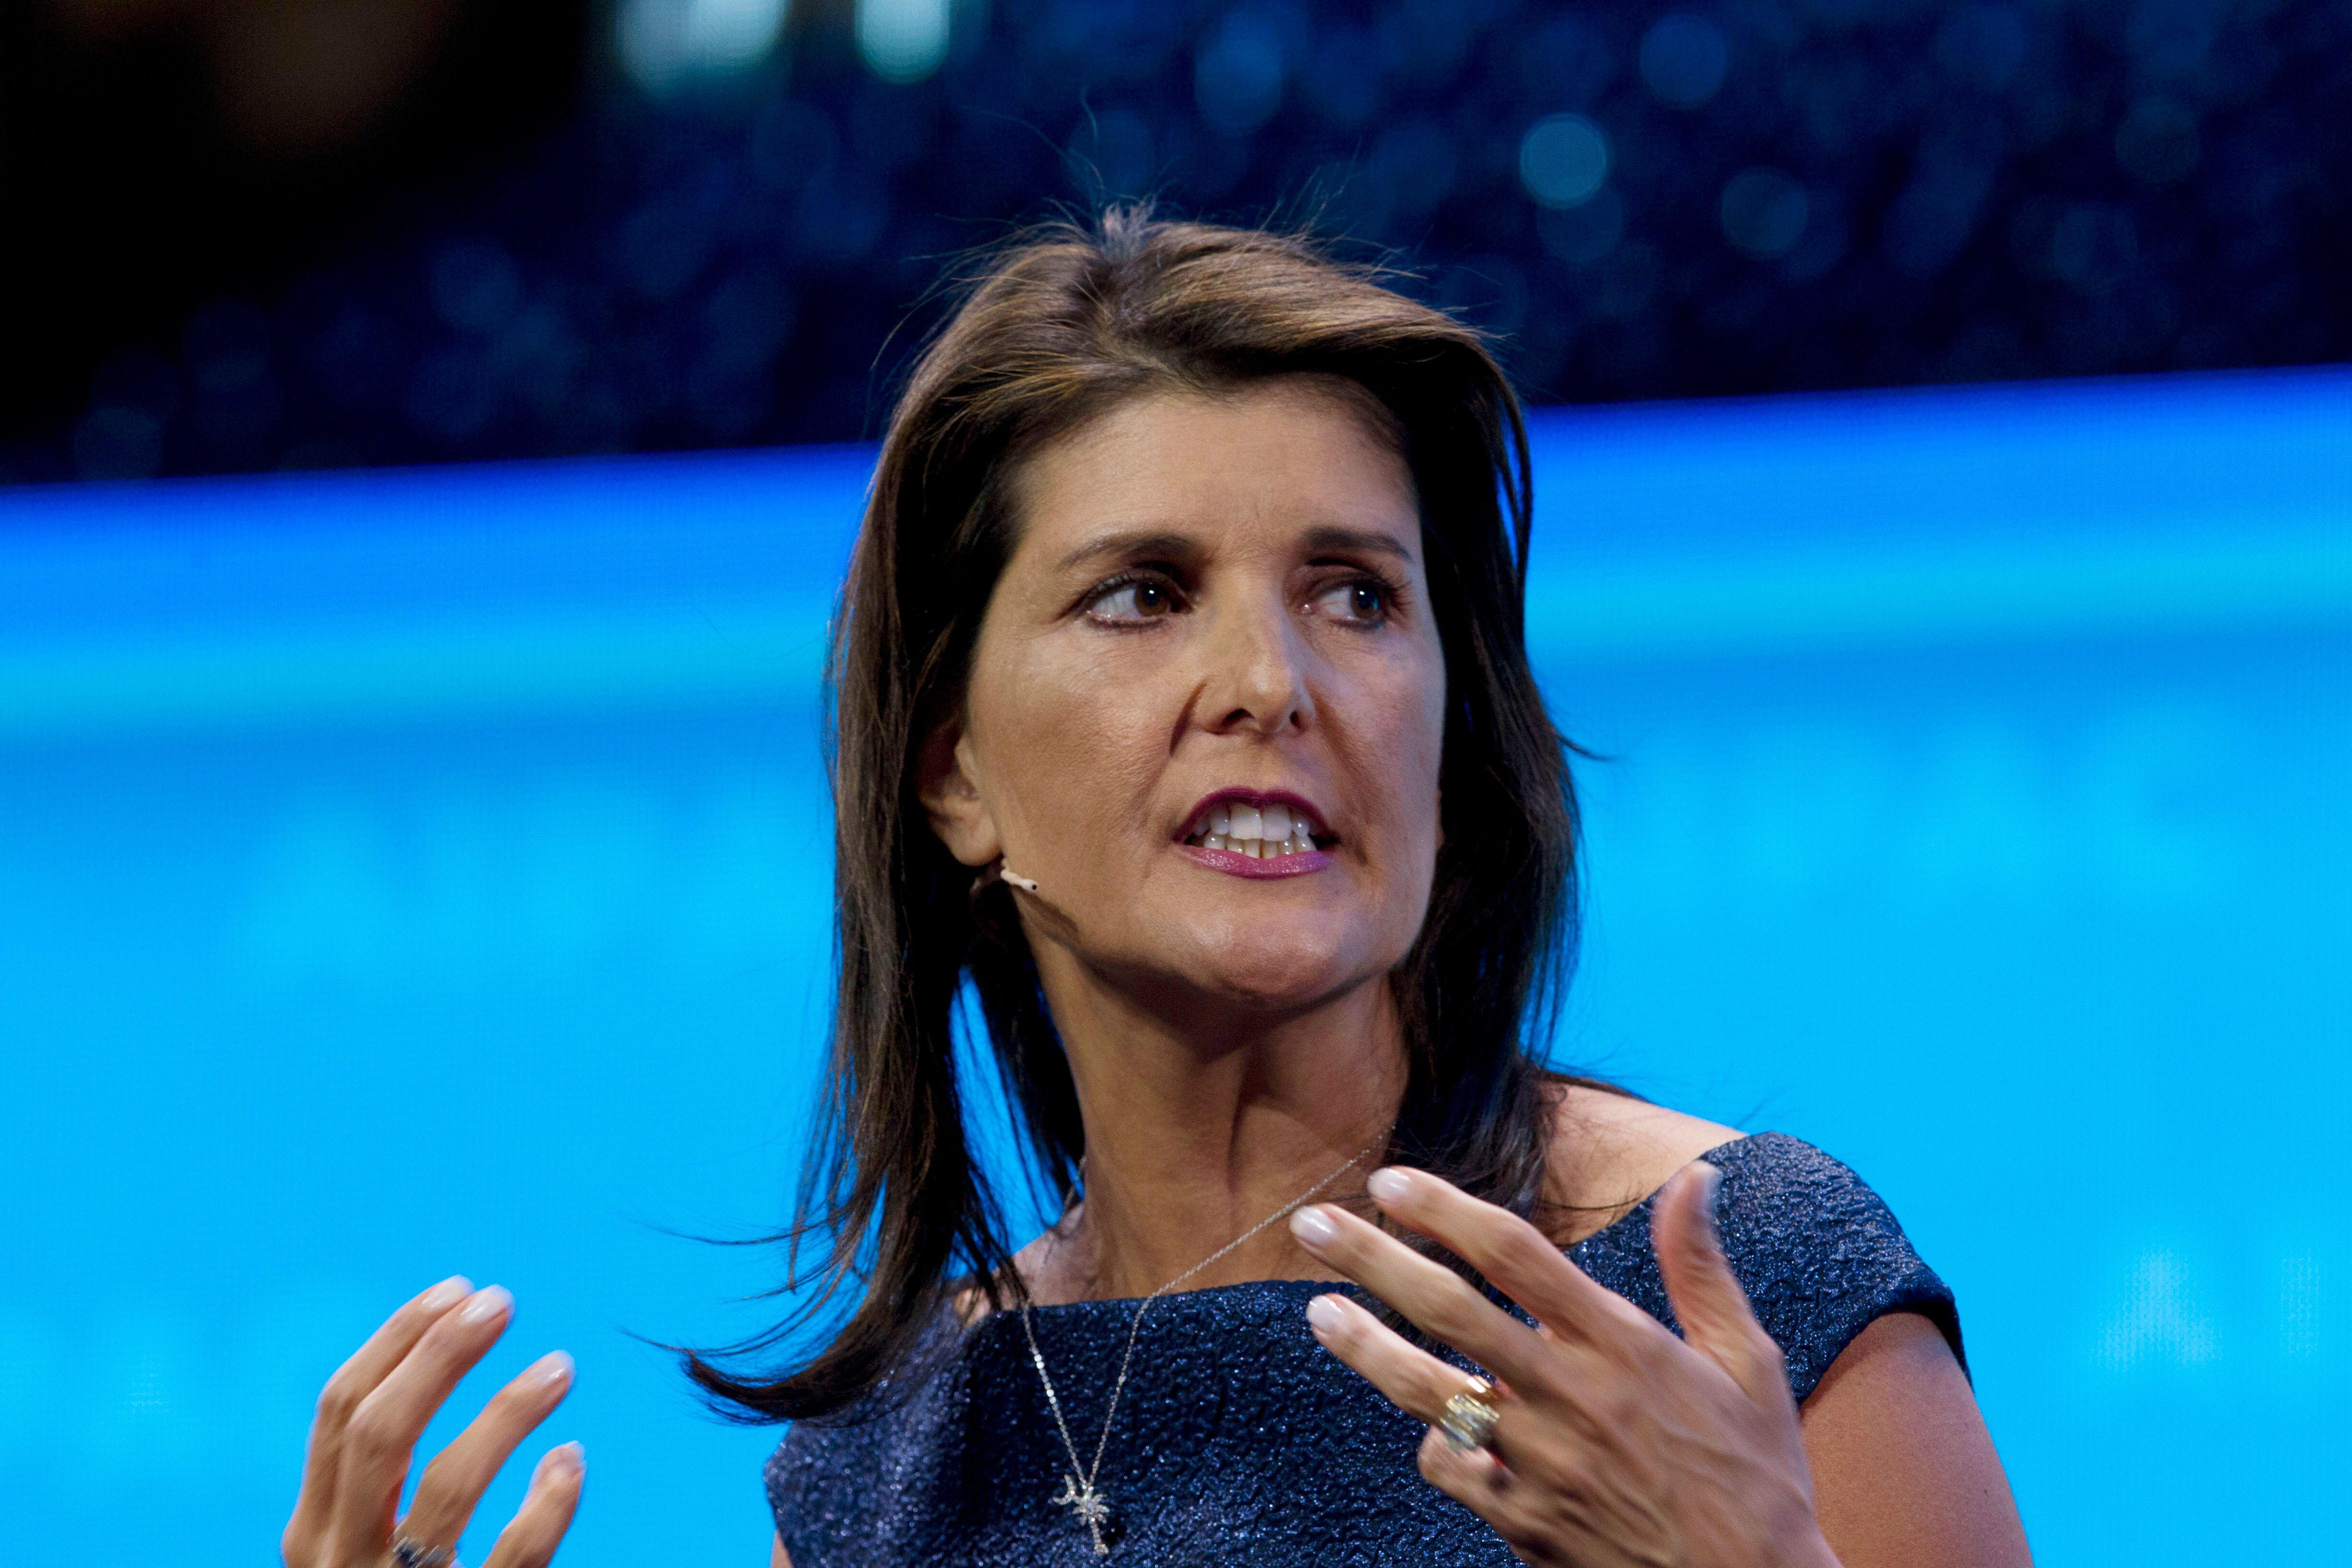 Nikki Haley: Backers Of Abortion Rights Are Forcing Their Values On America